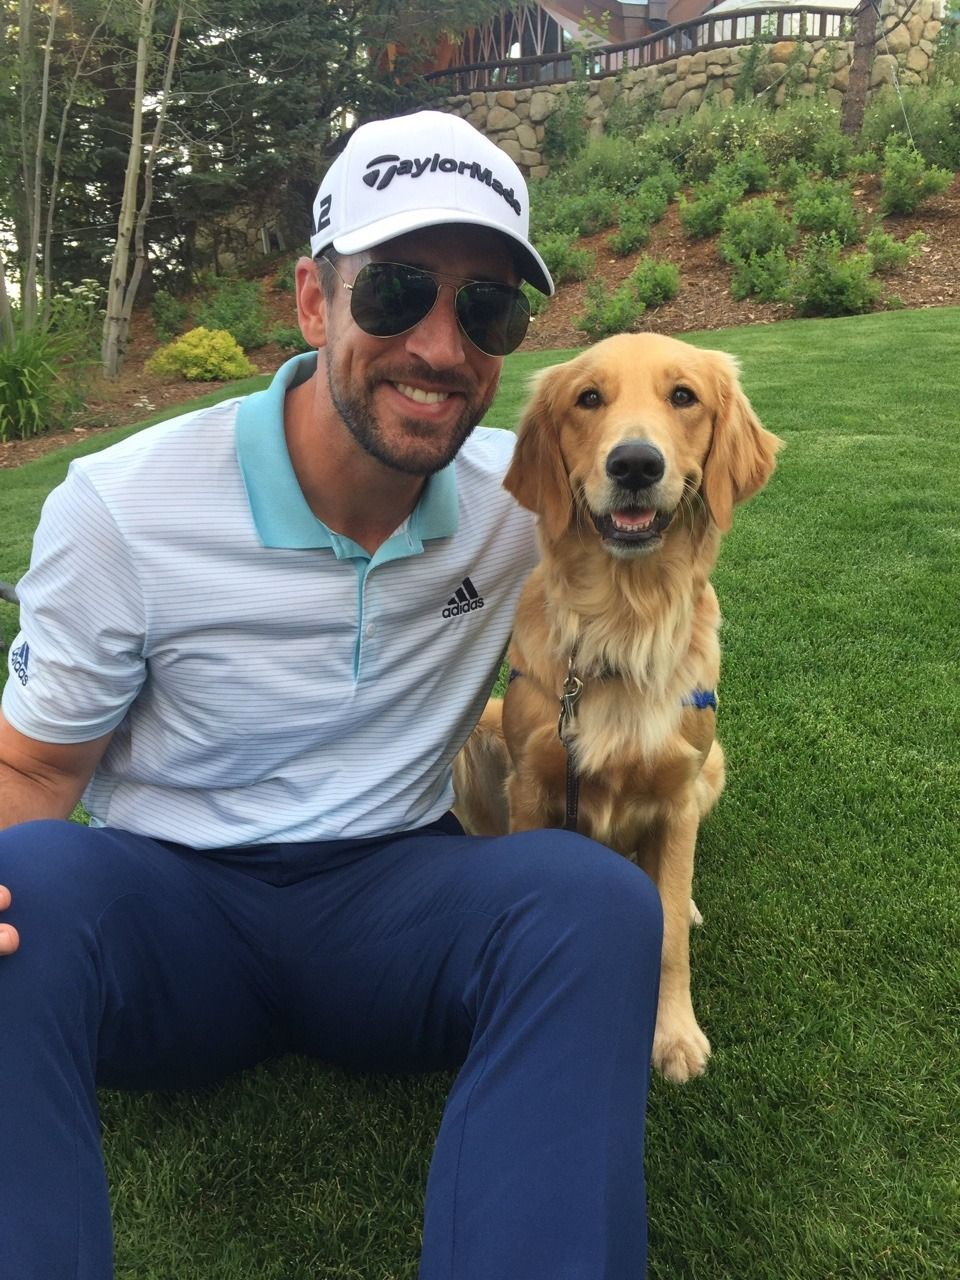 Aaron Rodgers Dog : aaron, rodgers, Aaron, Rogers, Rogers,, Packers,, Green, Packers